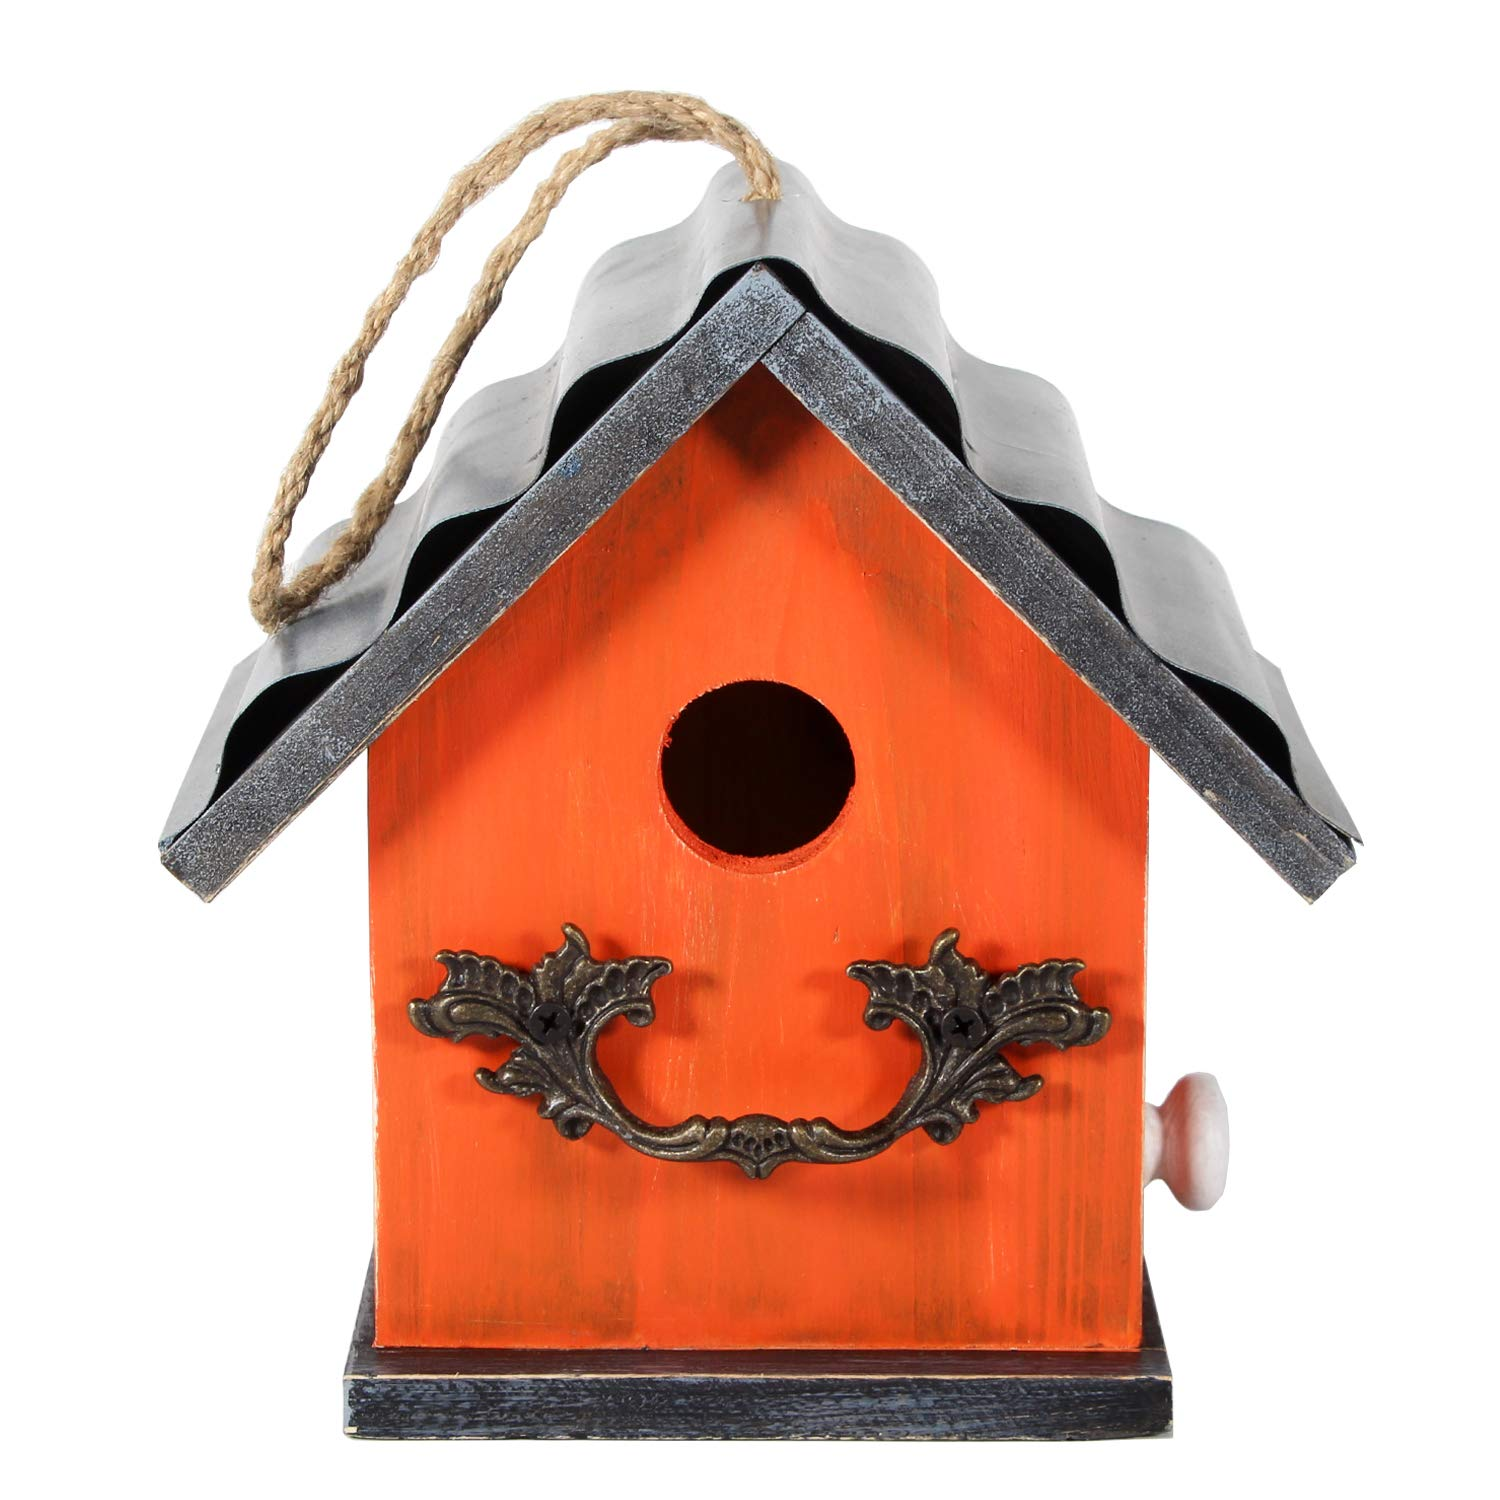 Tenforie Bird House for Outside, Resting Place for Birds, Hanging Natural Wooden Bird Nest, Bluebird House Handcrafted Hut (Orange)